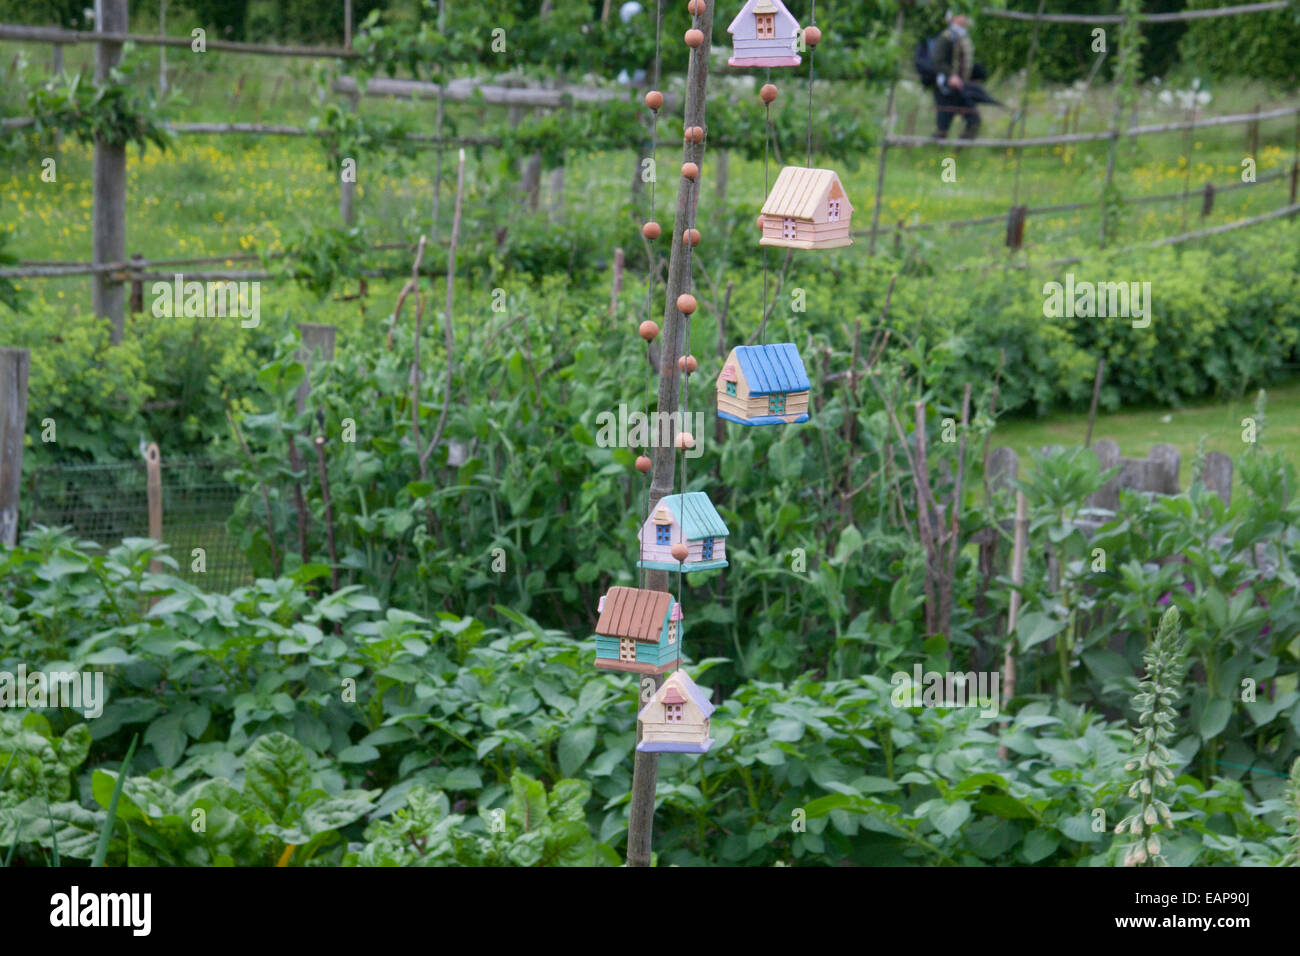 Garden decorations hanging from a pole in a rustic vegetable plot at ...